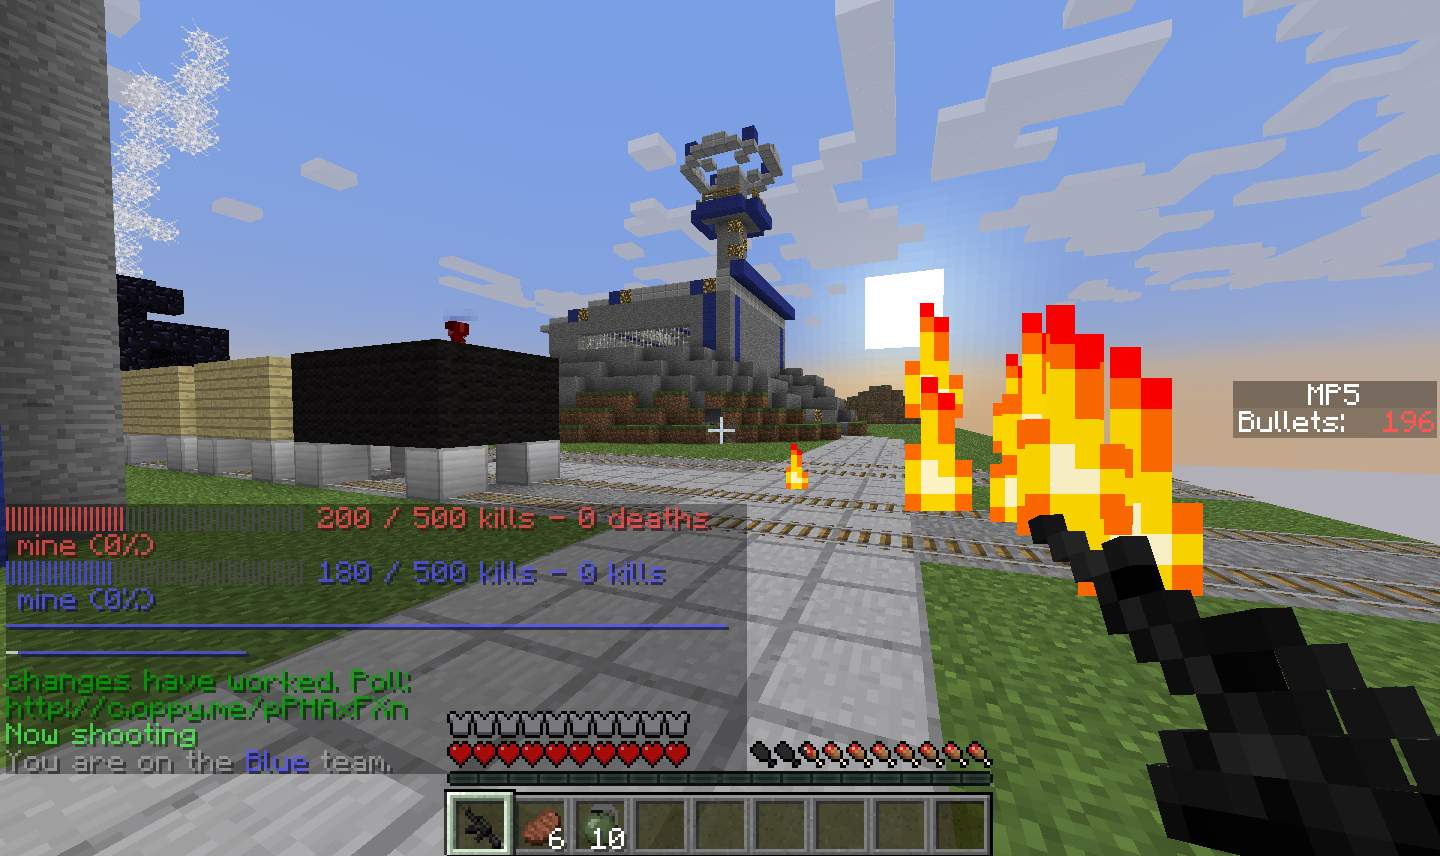 teamdeathmatch-minecraft-headshot-server-grenade-001